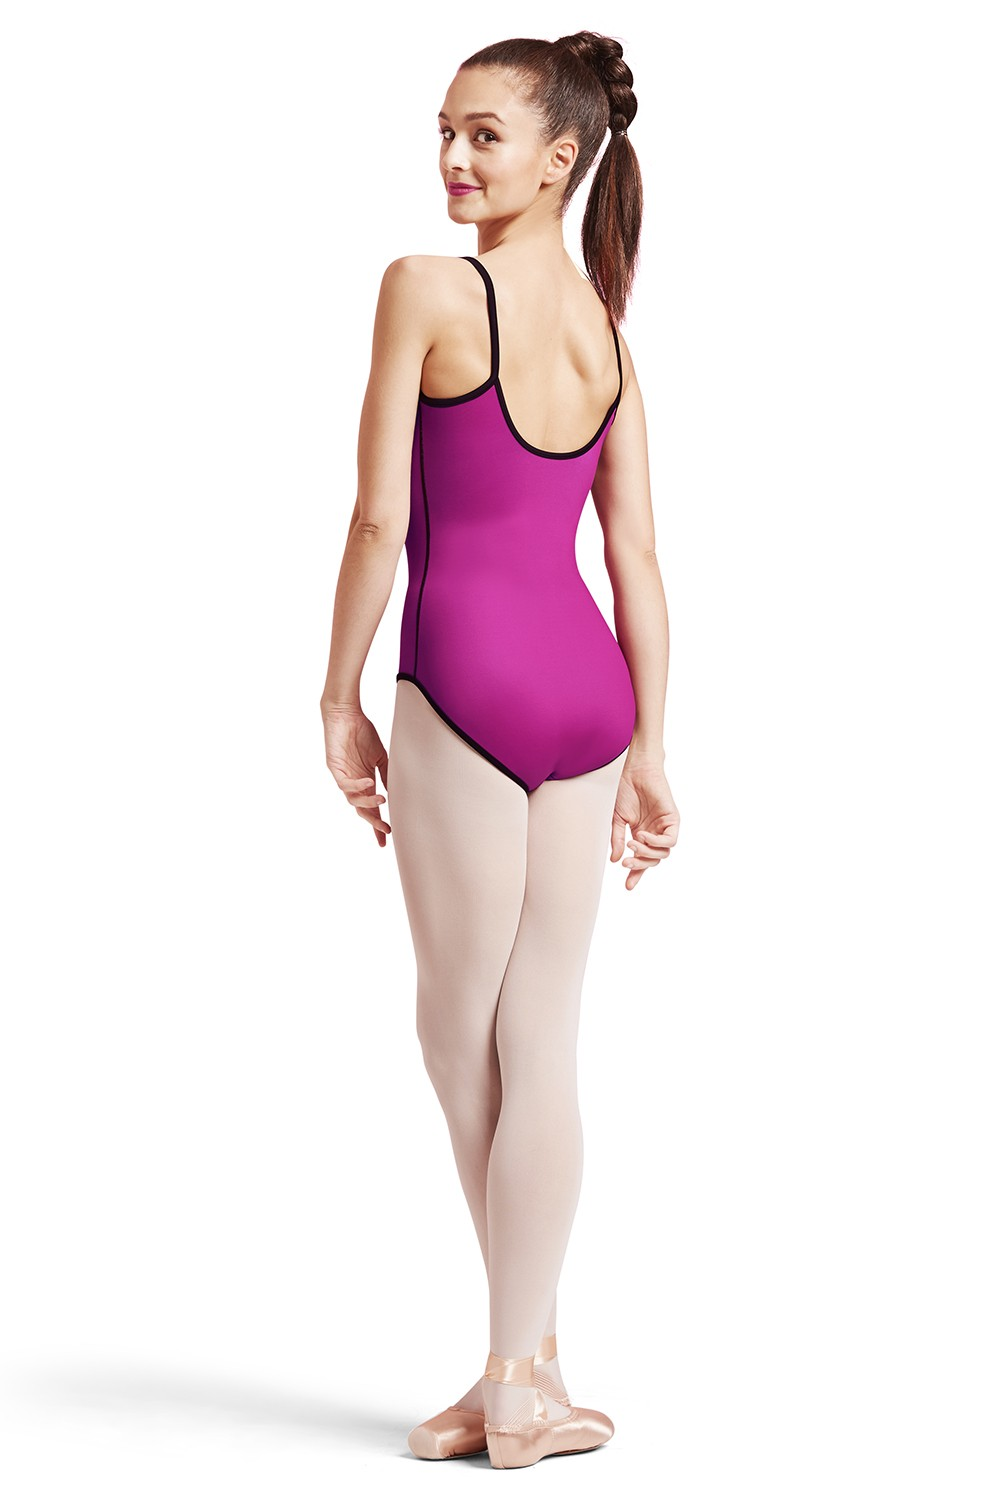 Sabella   Women's Dance Leotards